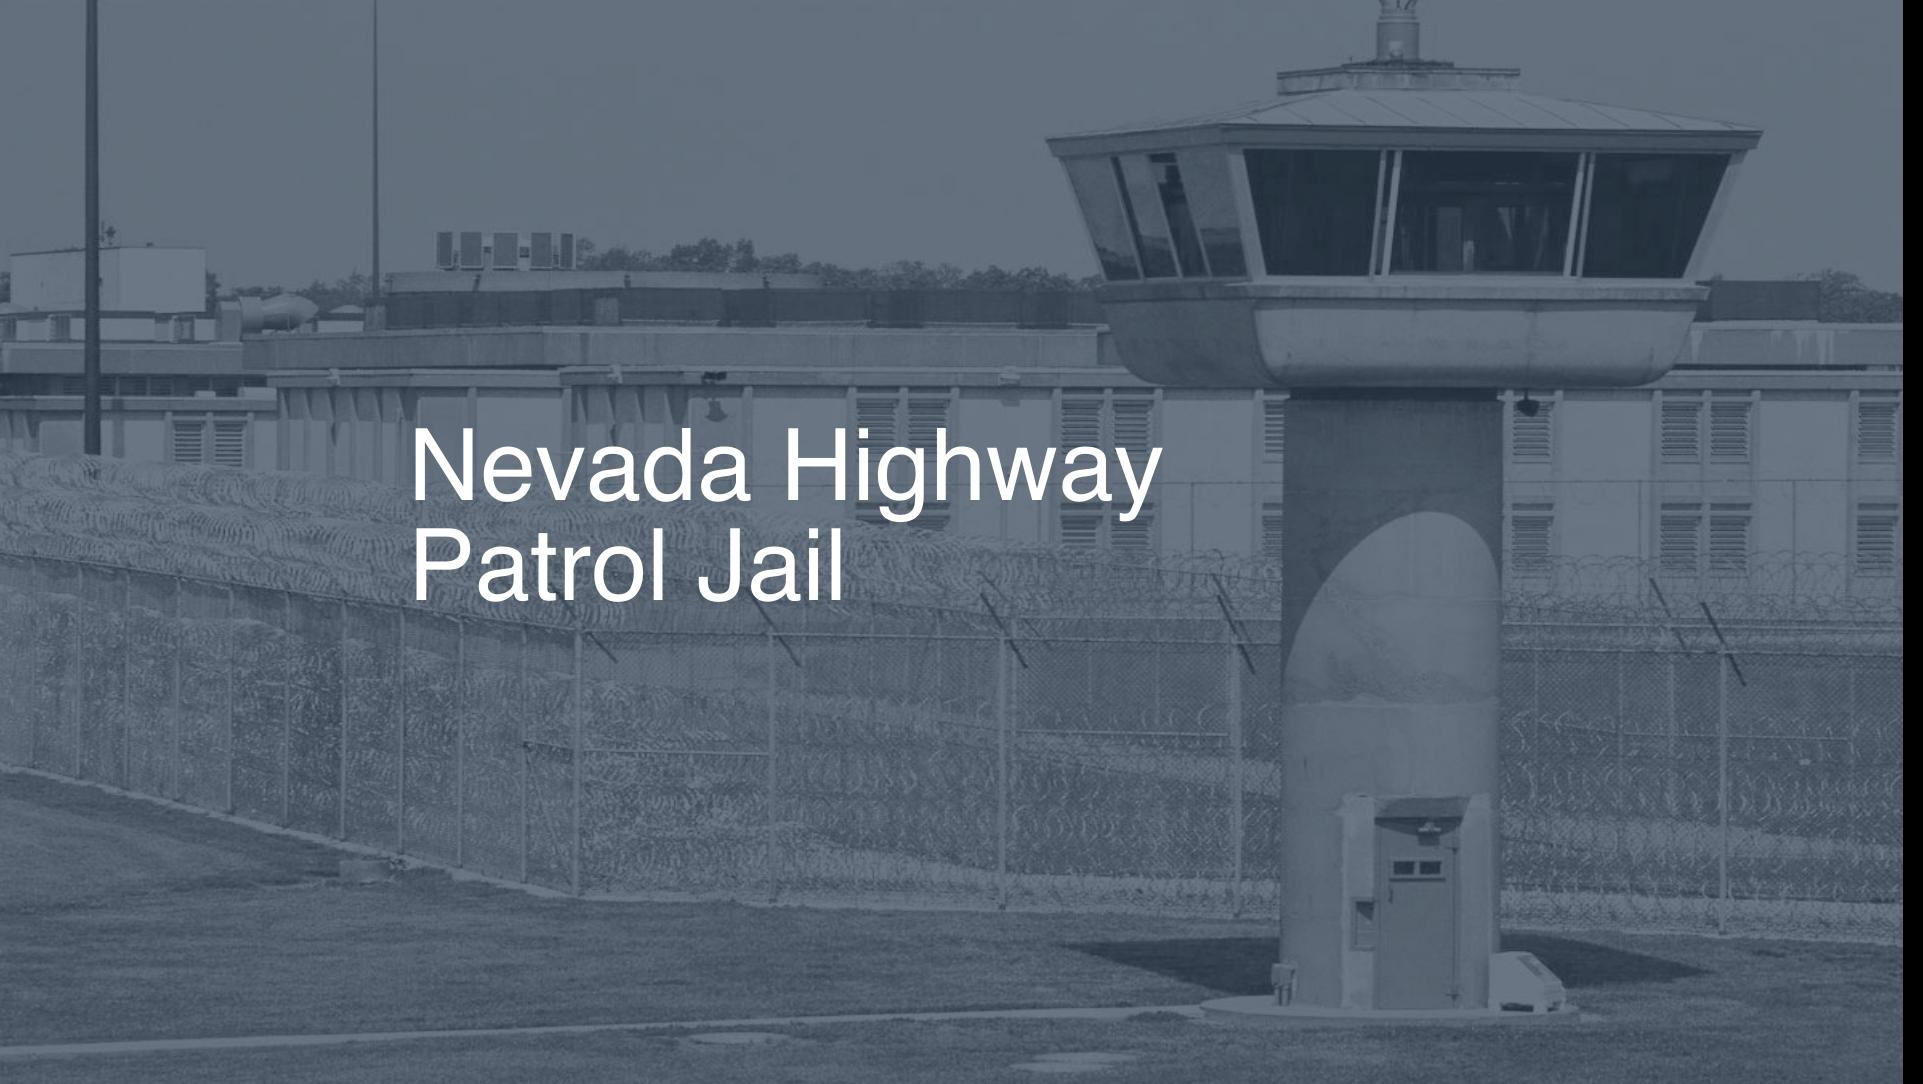 Nevada Highway Patrol Jail correctional facility picture